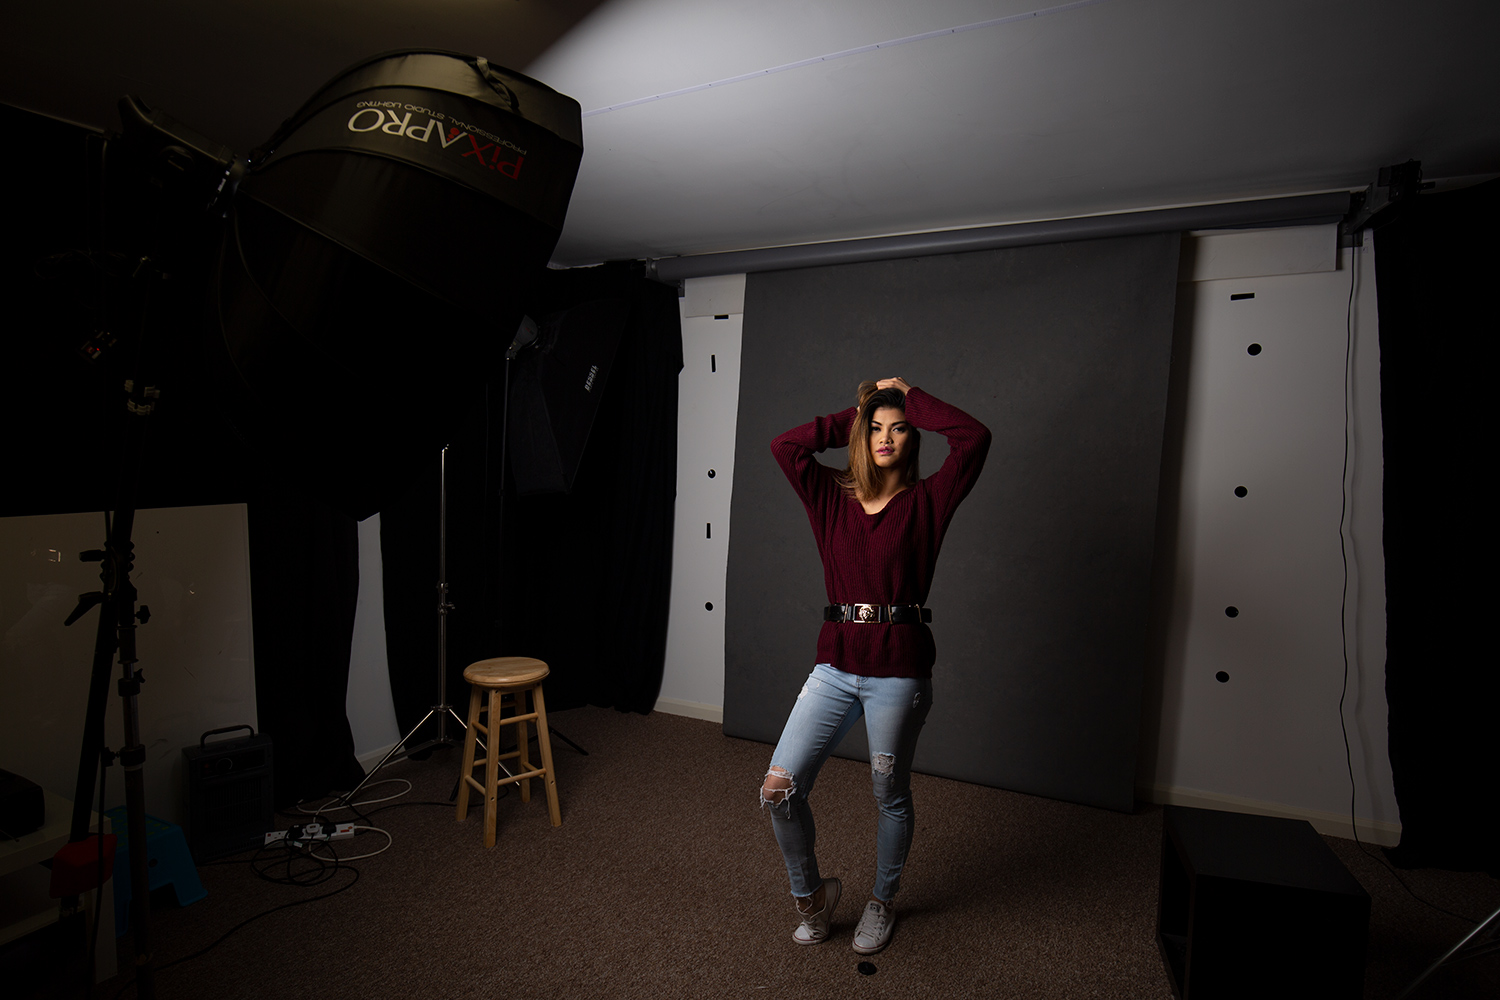 Image: Here, a softbox is placed at 45 degrees to the subject.